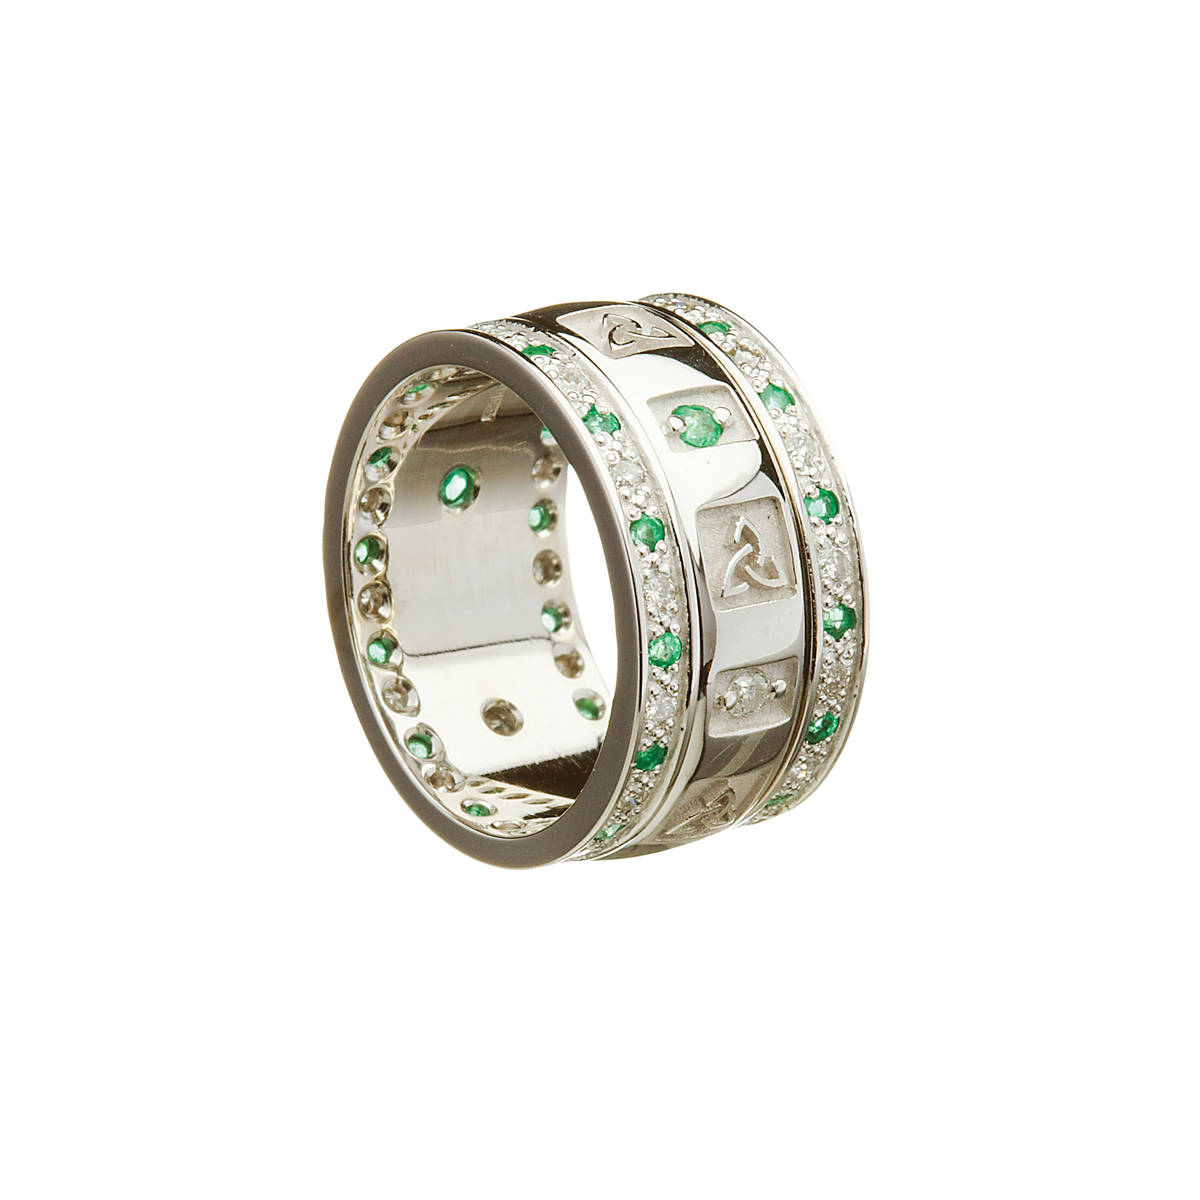 14ct white gold ladies wedding band with Celtic Trinity Knot windows and alternating diamonds and emeralds. Rims channel-set diamonds and emeralds.   Centre contains 3 diamonds and 3 emeralds and heavy raised Celtic Trinity Knot windows.   Rim channel-set with diamonds and emeralds also.  Width: 8.3 mm